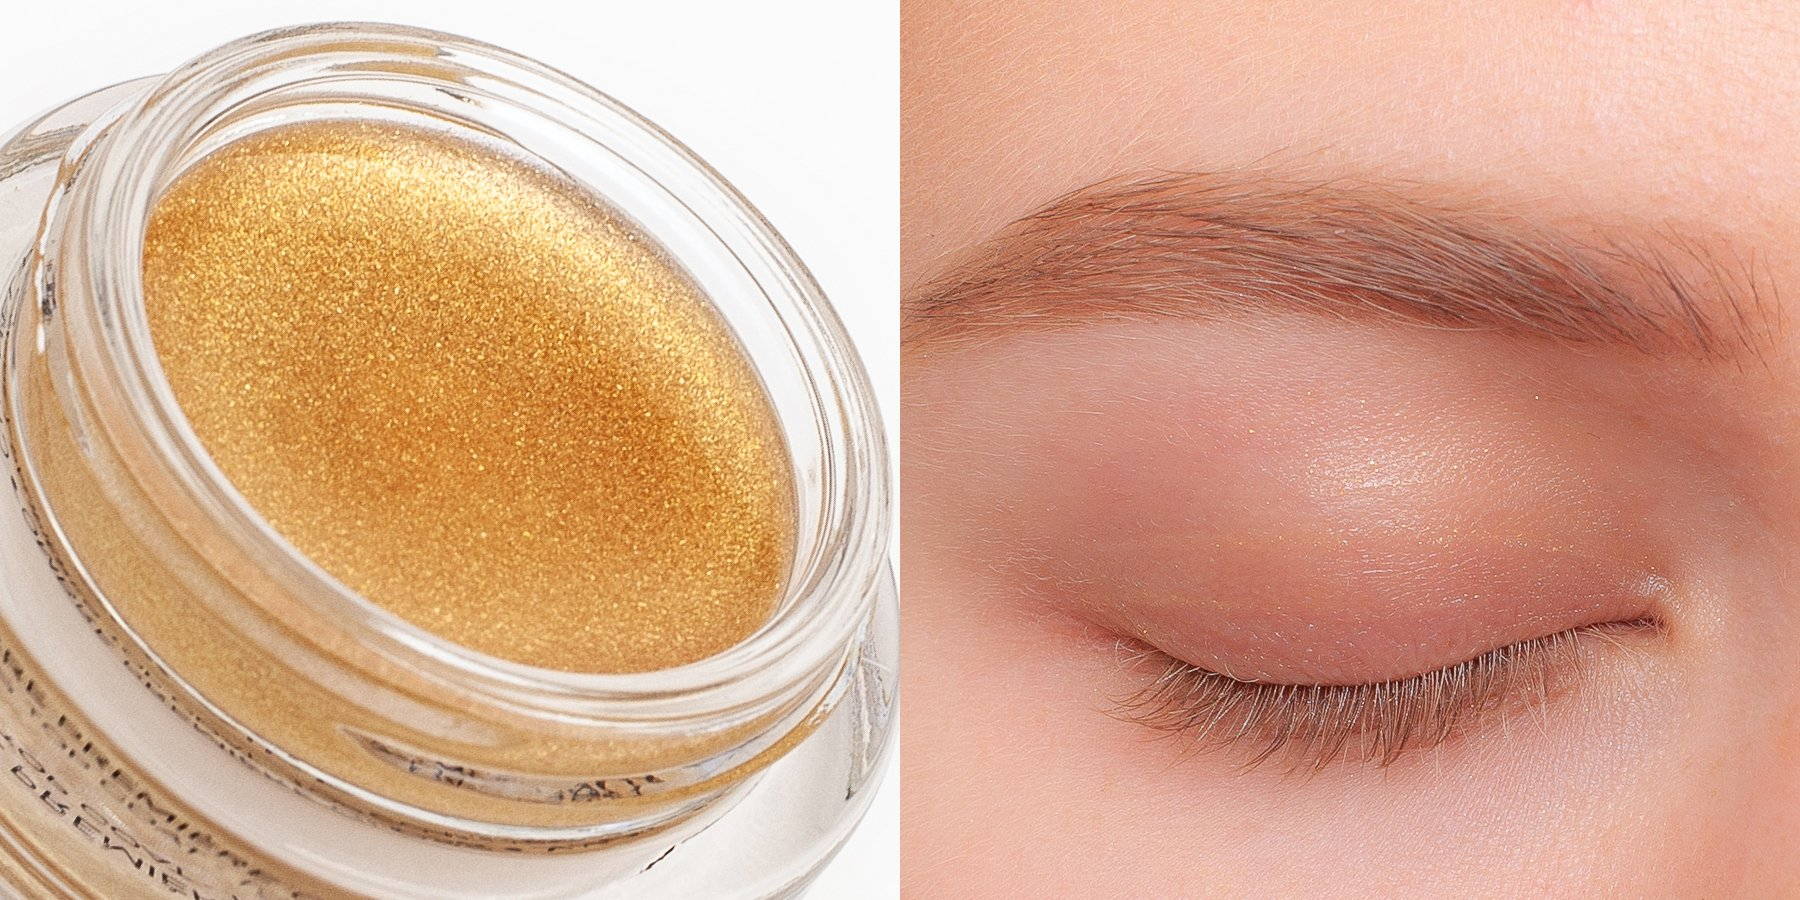 chanel top coat eyeshadow solaire